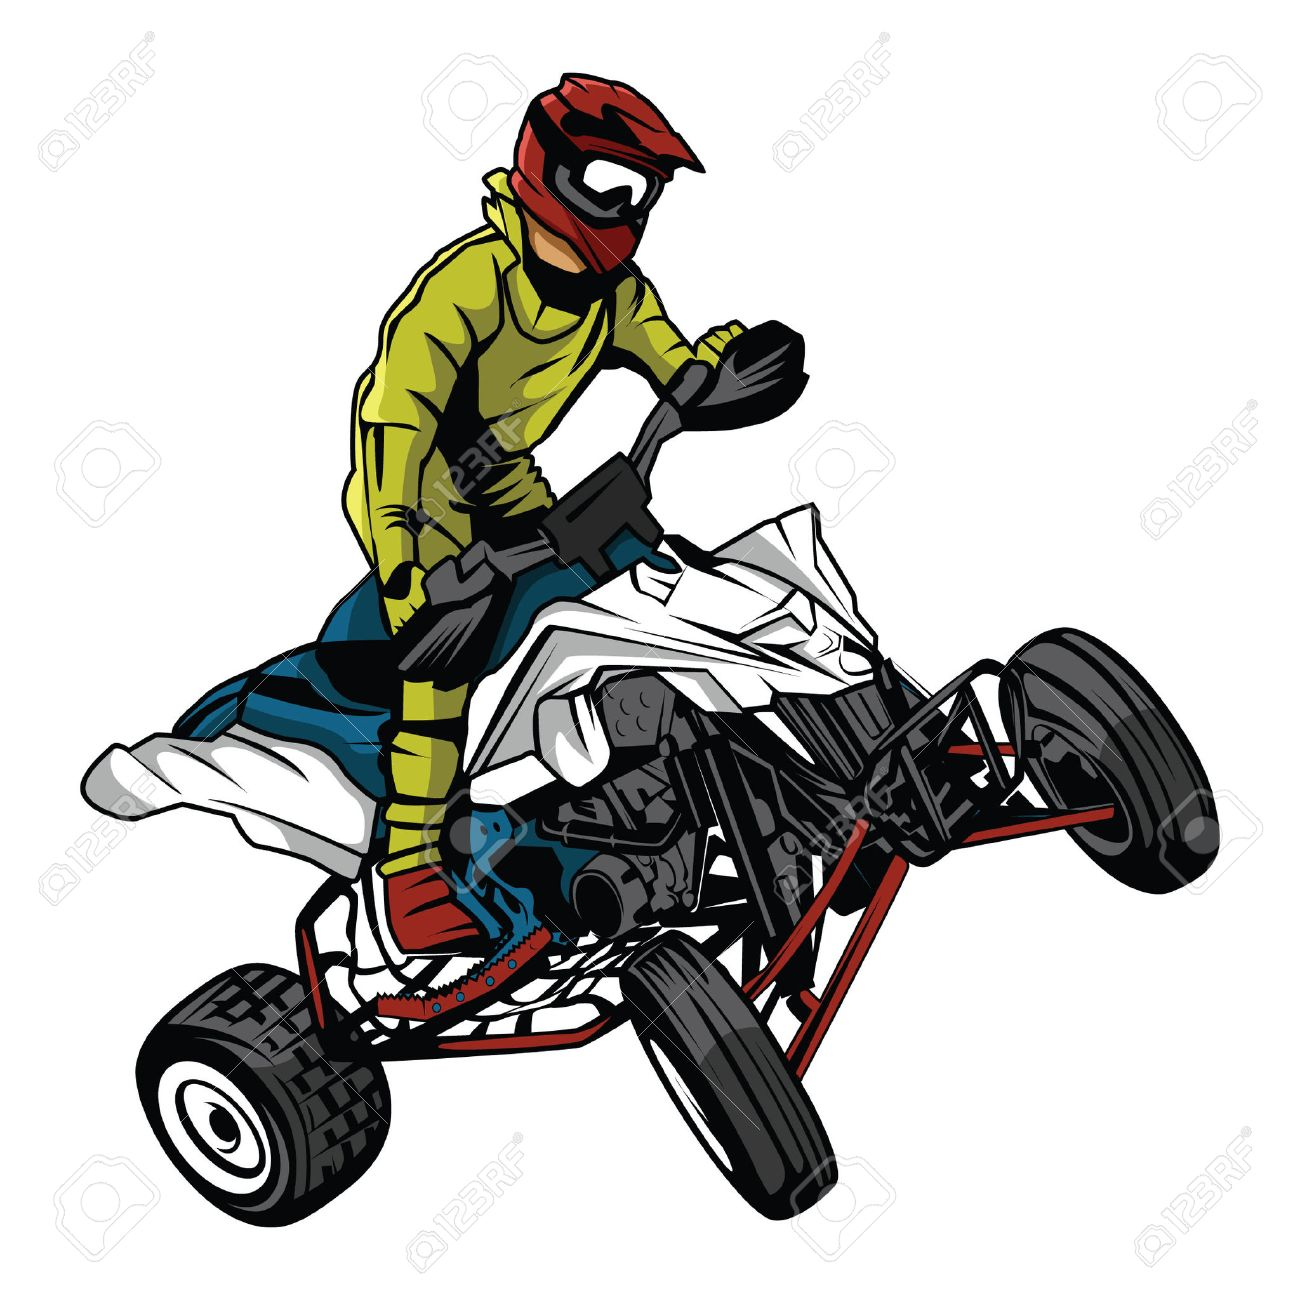 atv moto rider royalty free cliparts vectors and stock rh 123rf com atv clip art stunts atv cartoon clip art